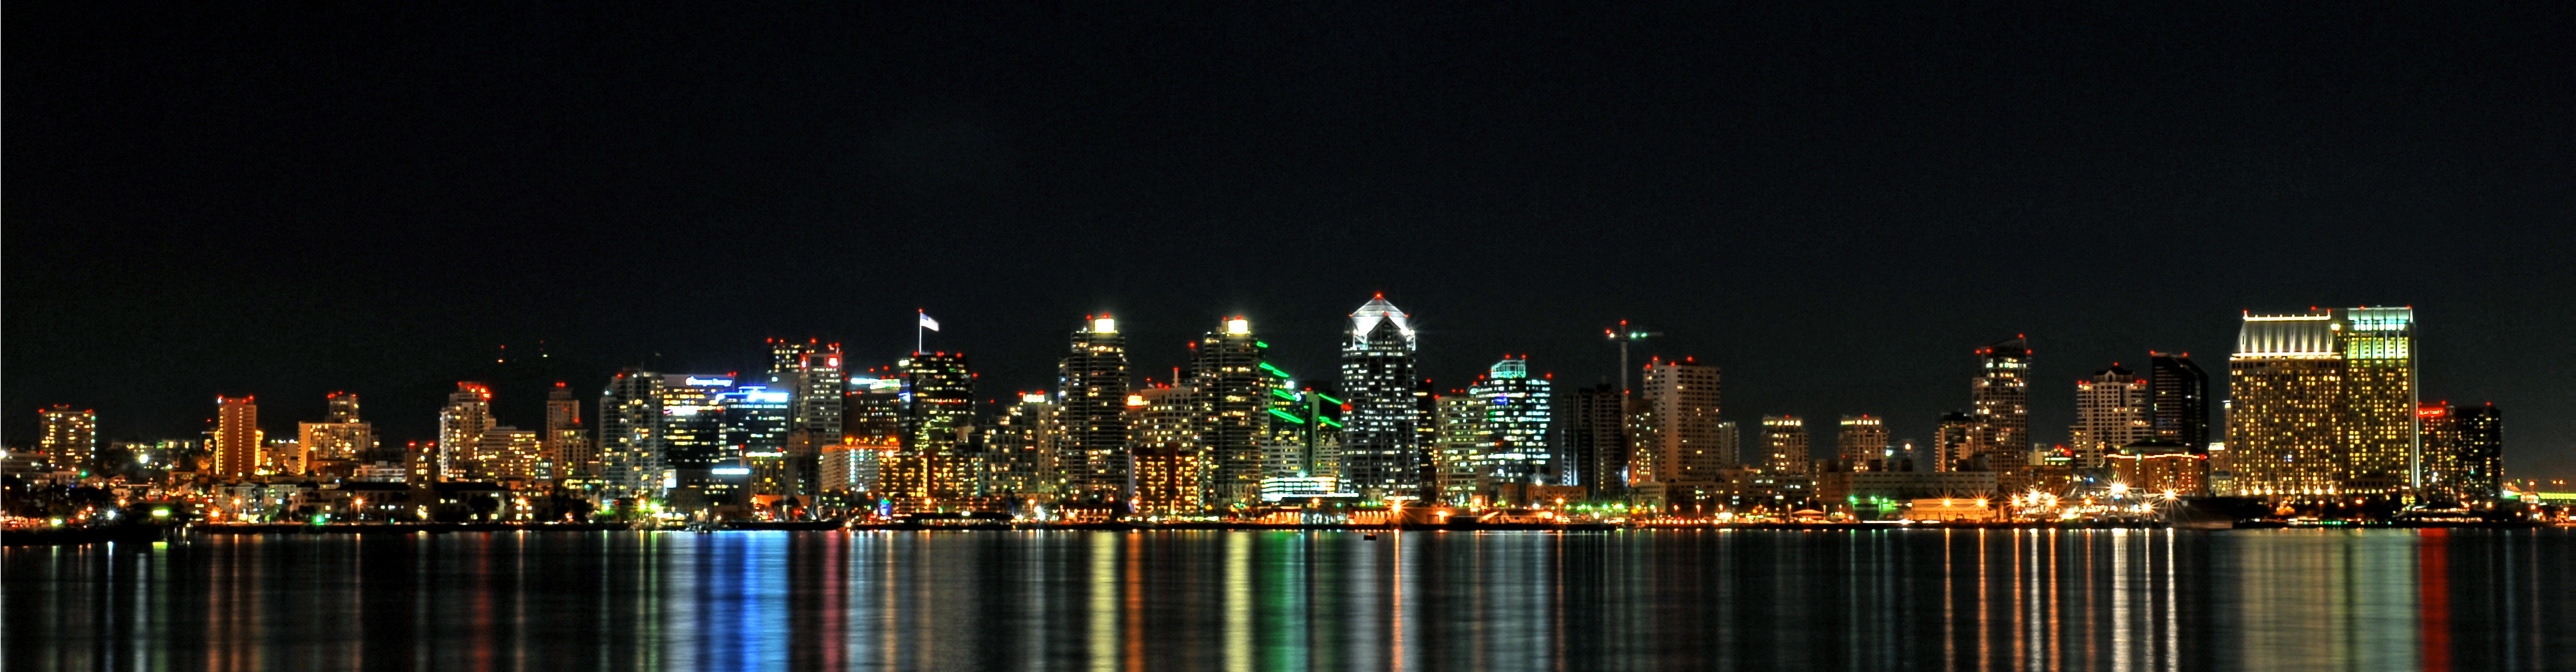 wide san diego night HD Wallpaper